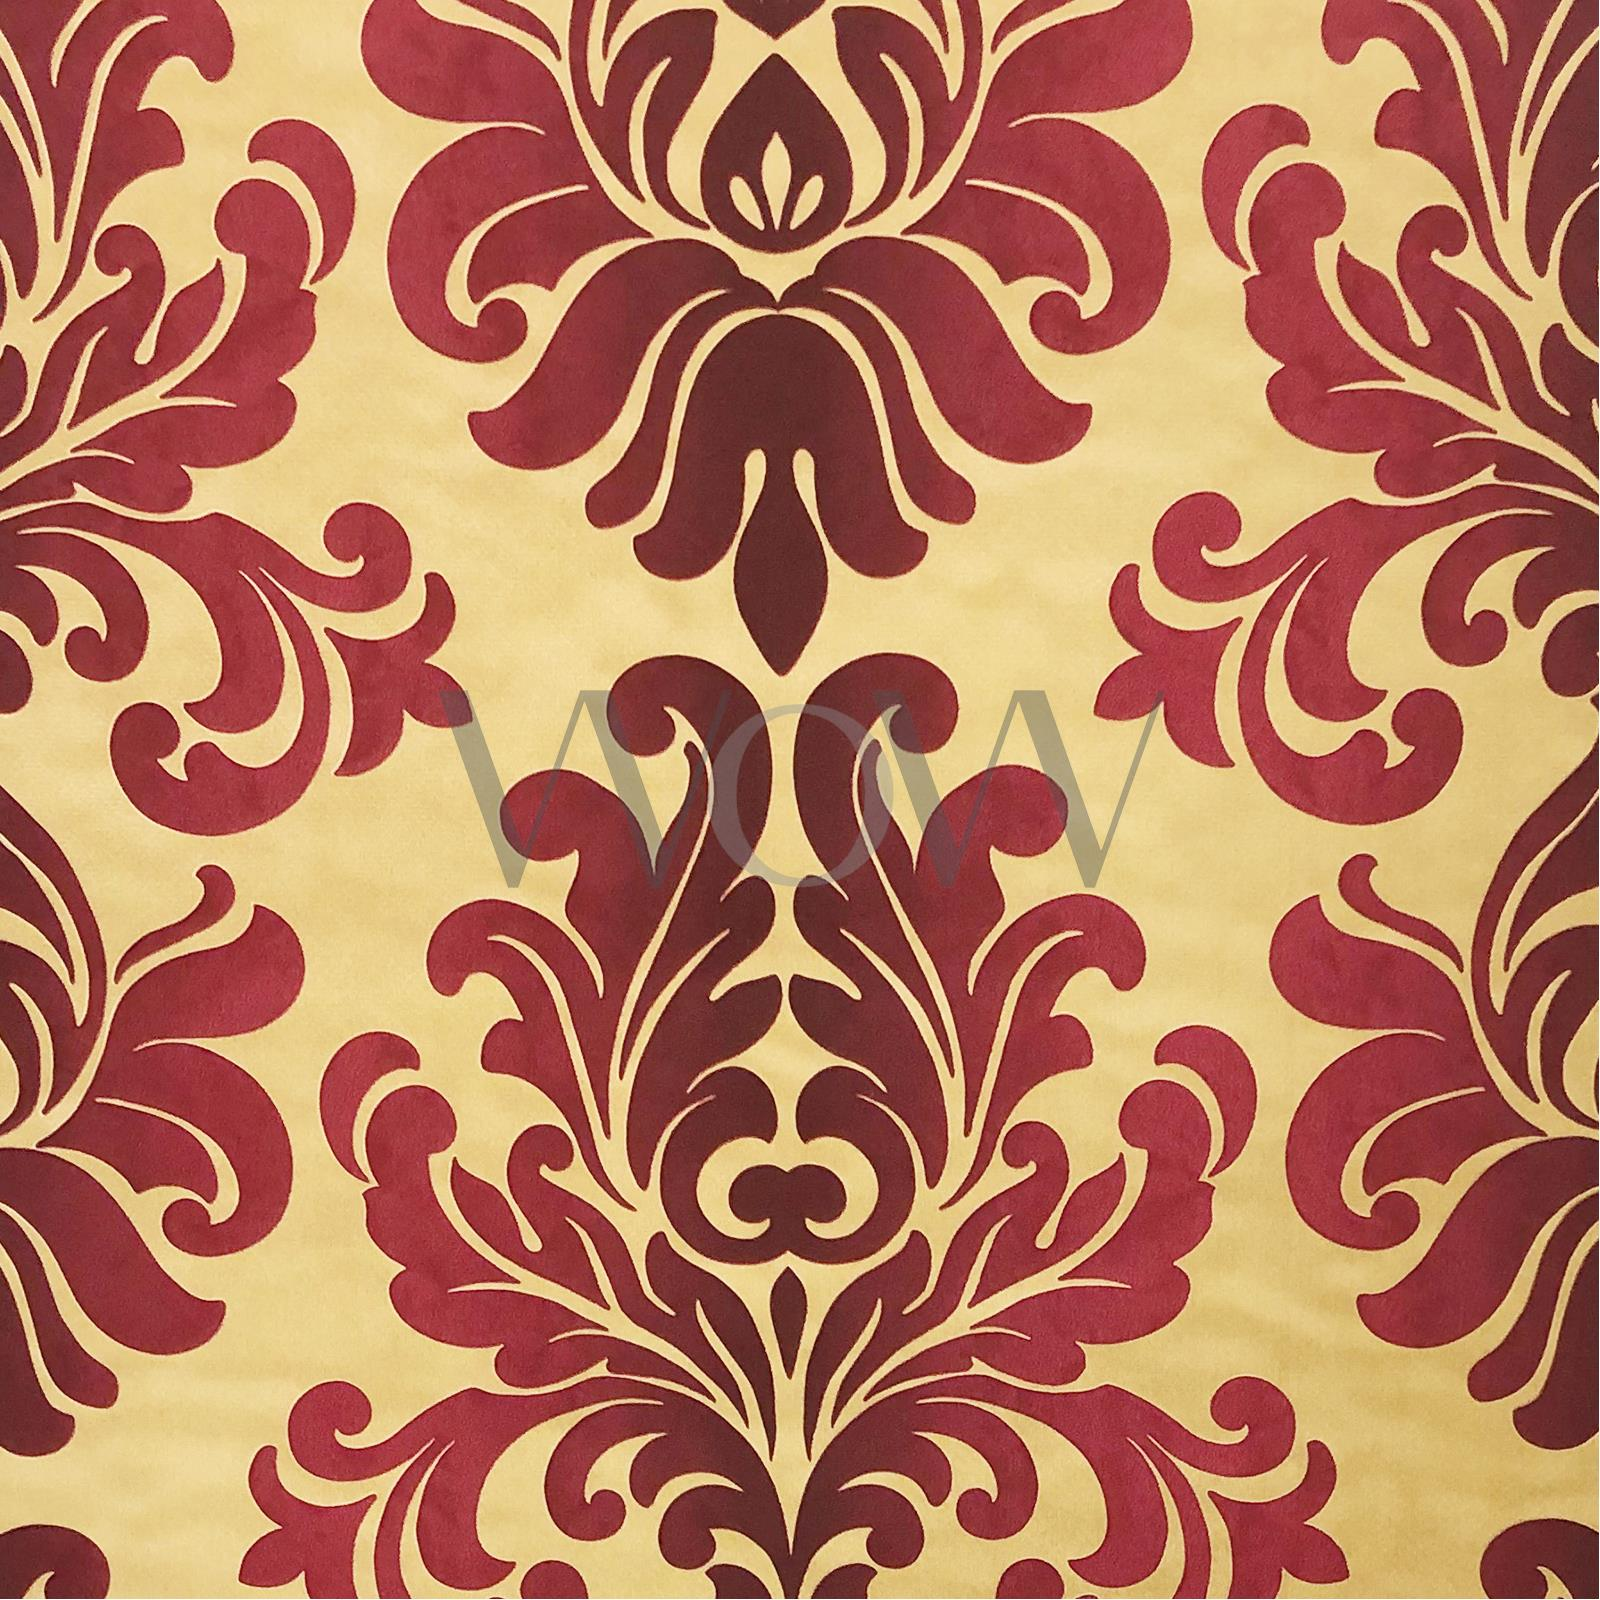 Details About En Suite Baroque Damask Wallpaper Textured Rasch 546101 Red Gold